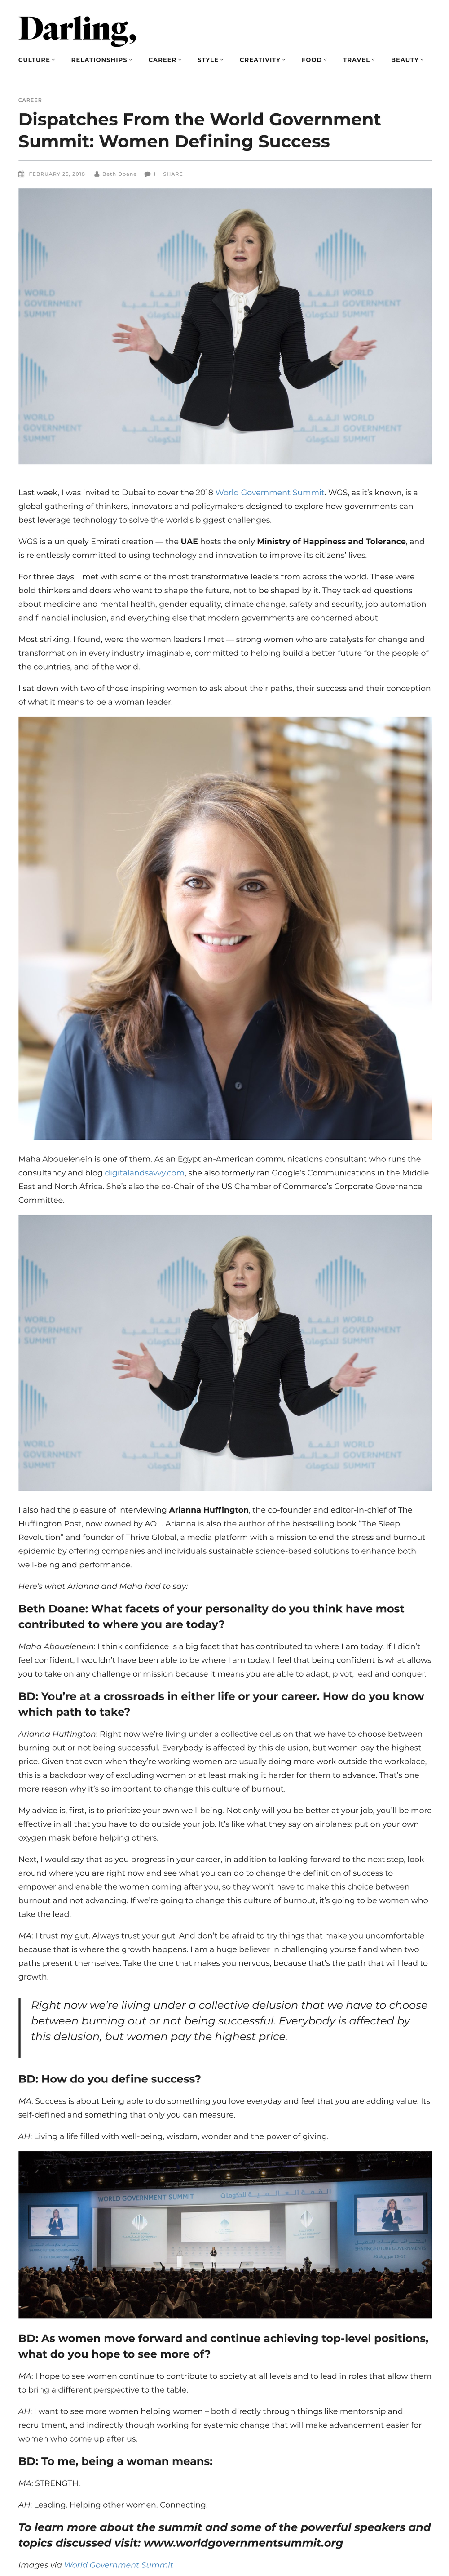 screencapture-darlingmagazine-org-world-government-summit-maha-abouelenein-arianna-huffington-1520097030785 copy.png